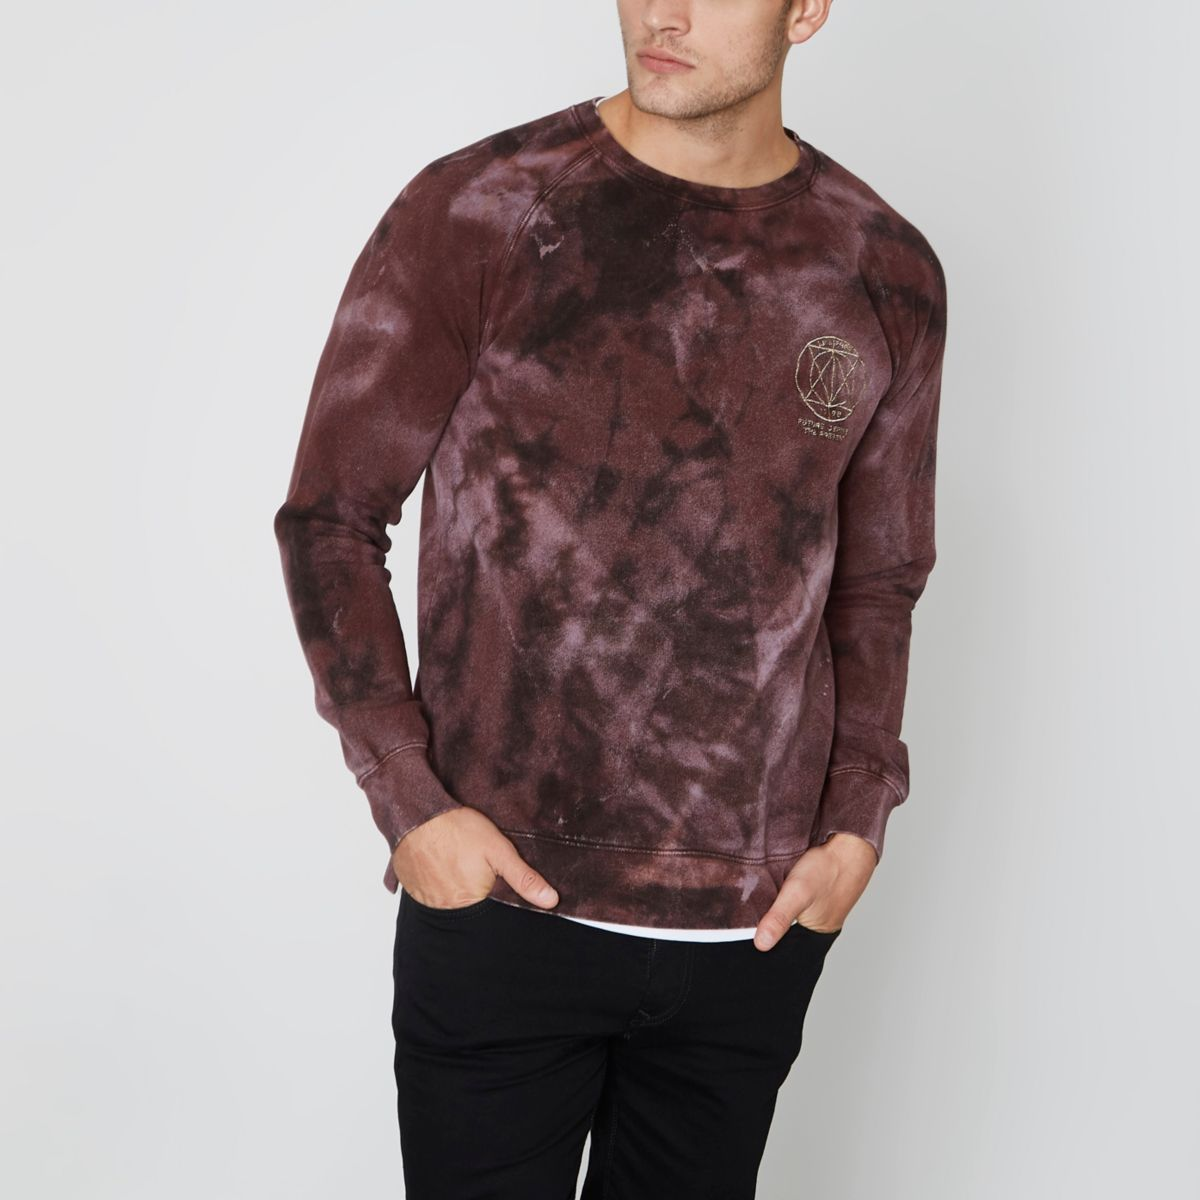 Red Jack & Jones tie dye crew sweatshirt